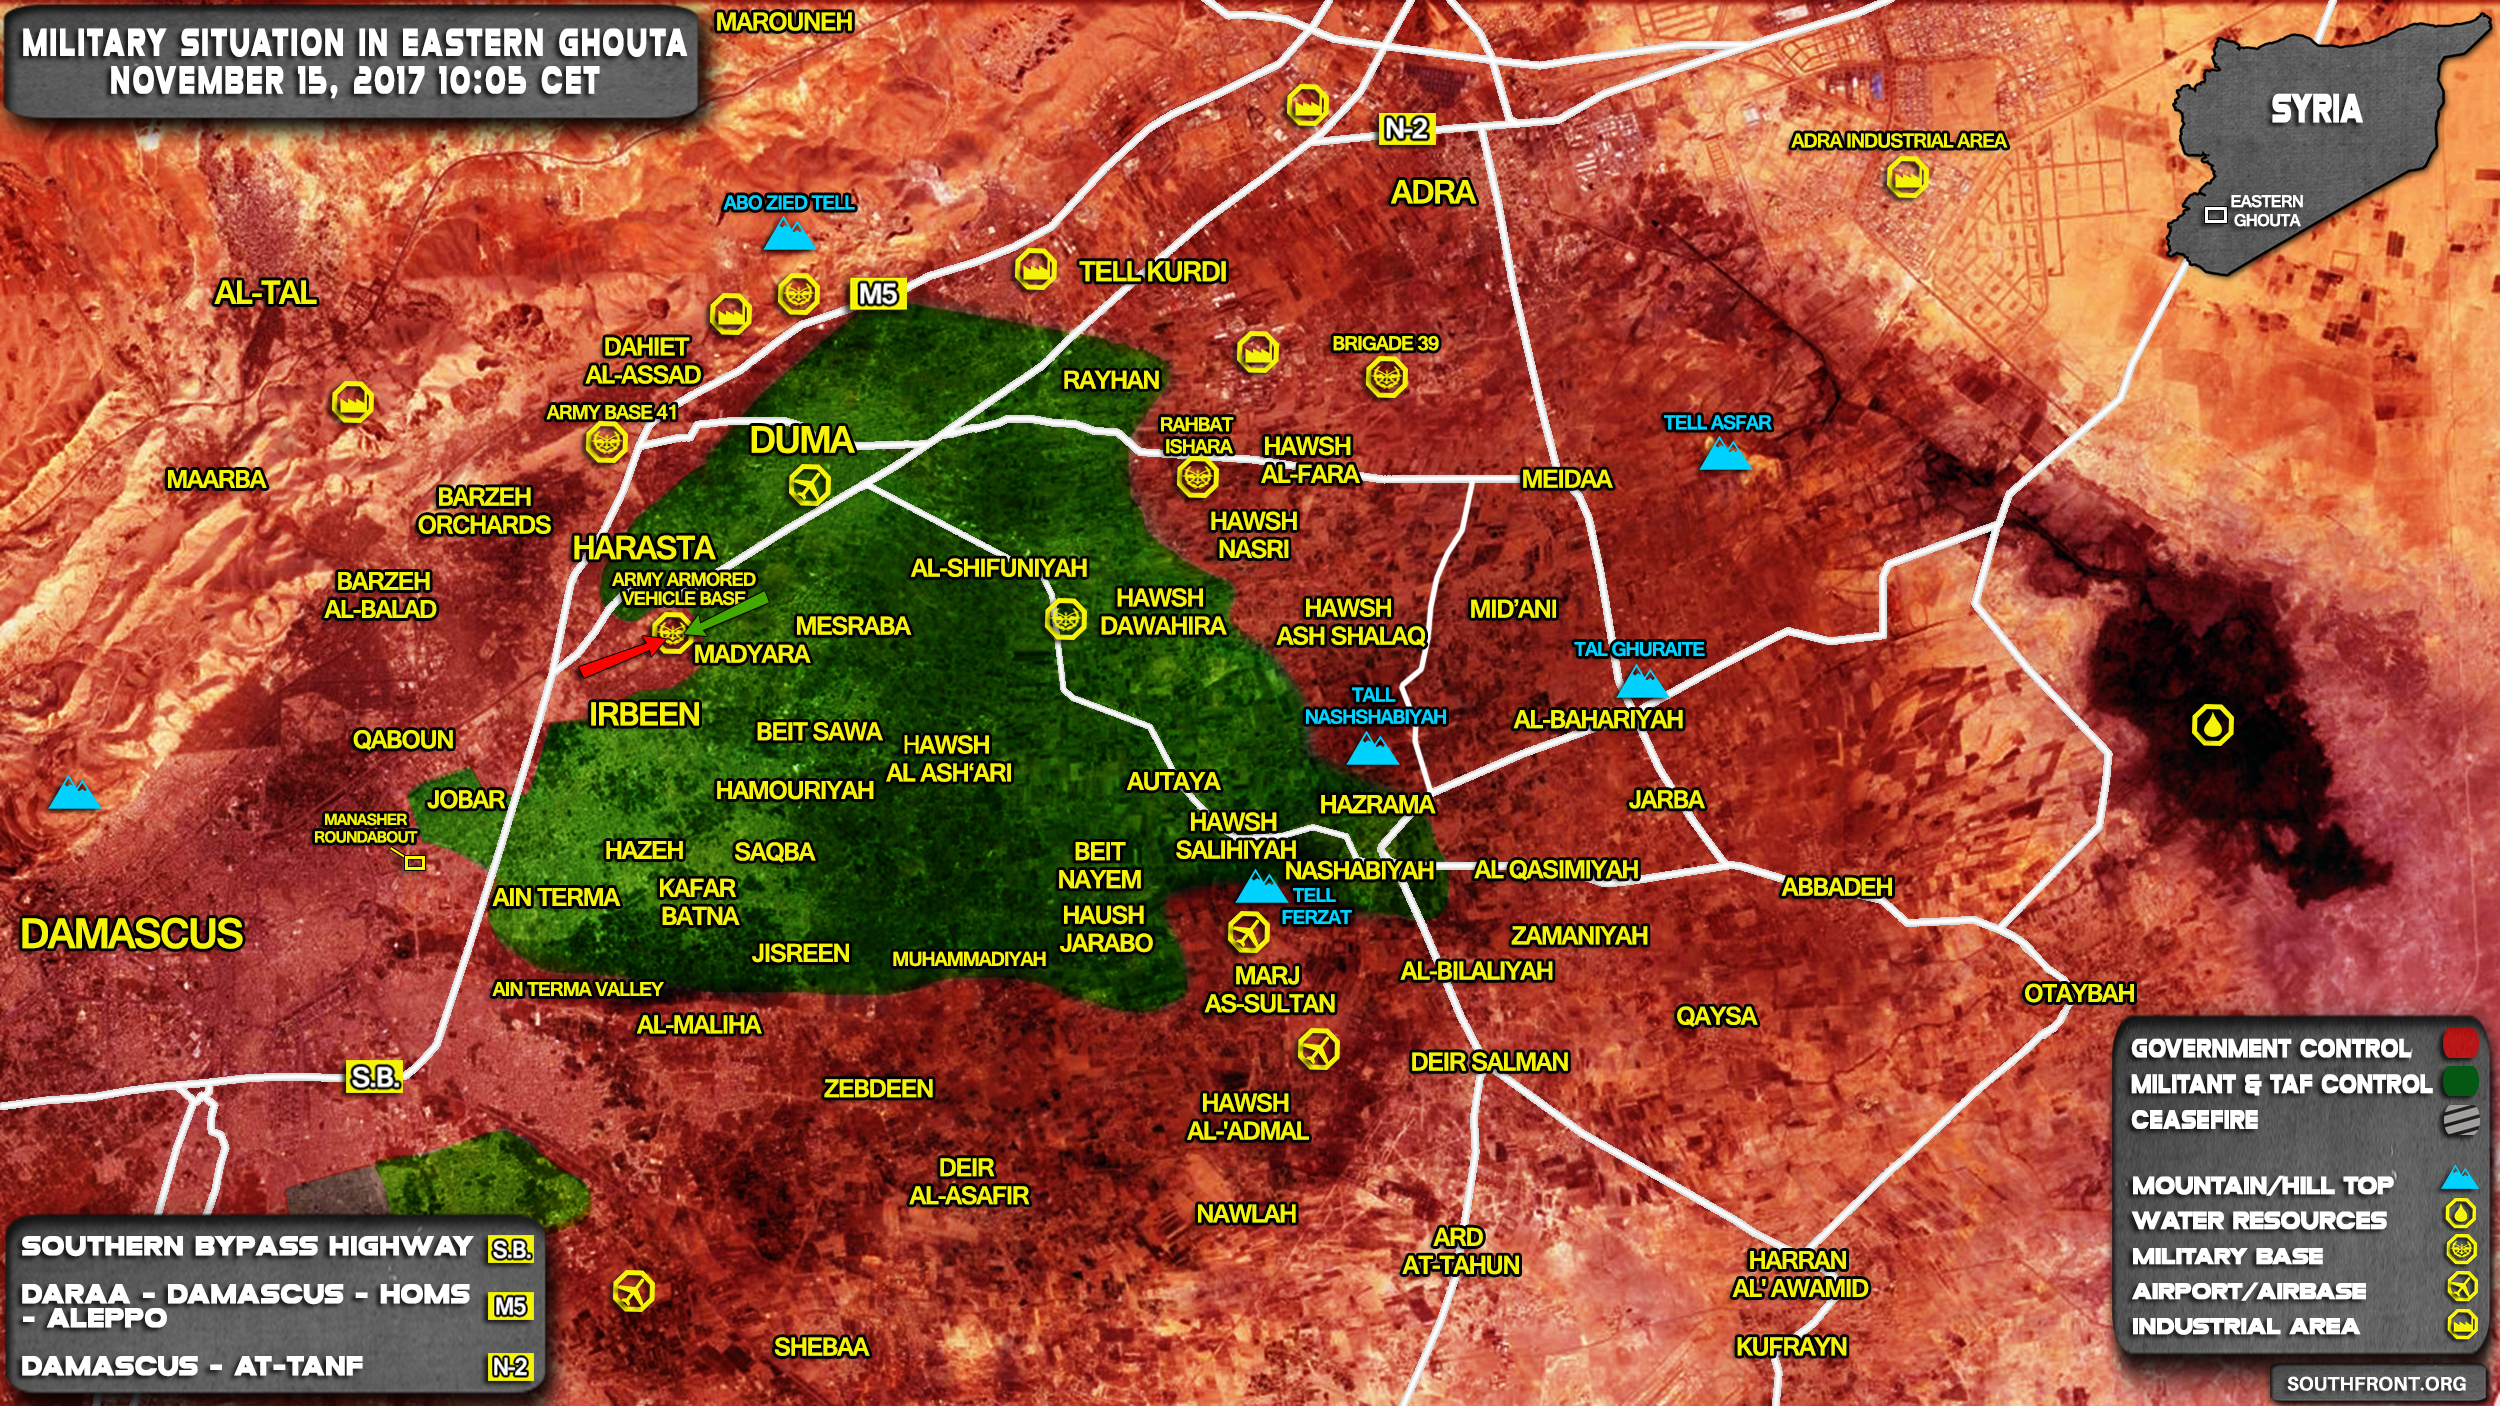 military situation in syrias eastern ghouta region on november 15 2017 map update